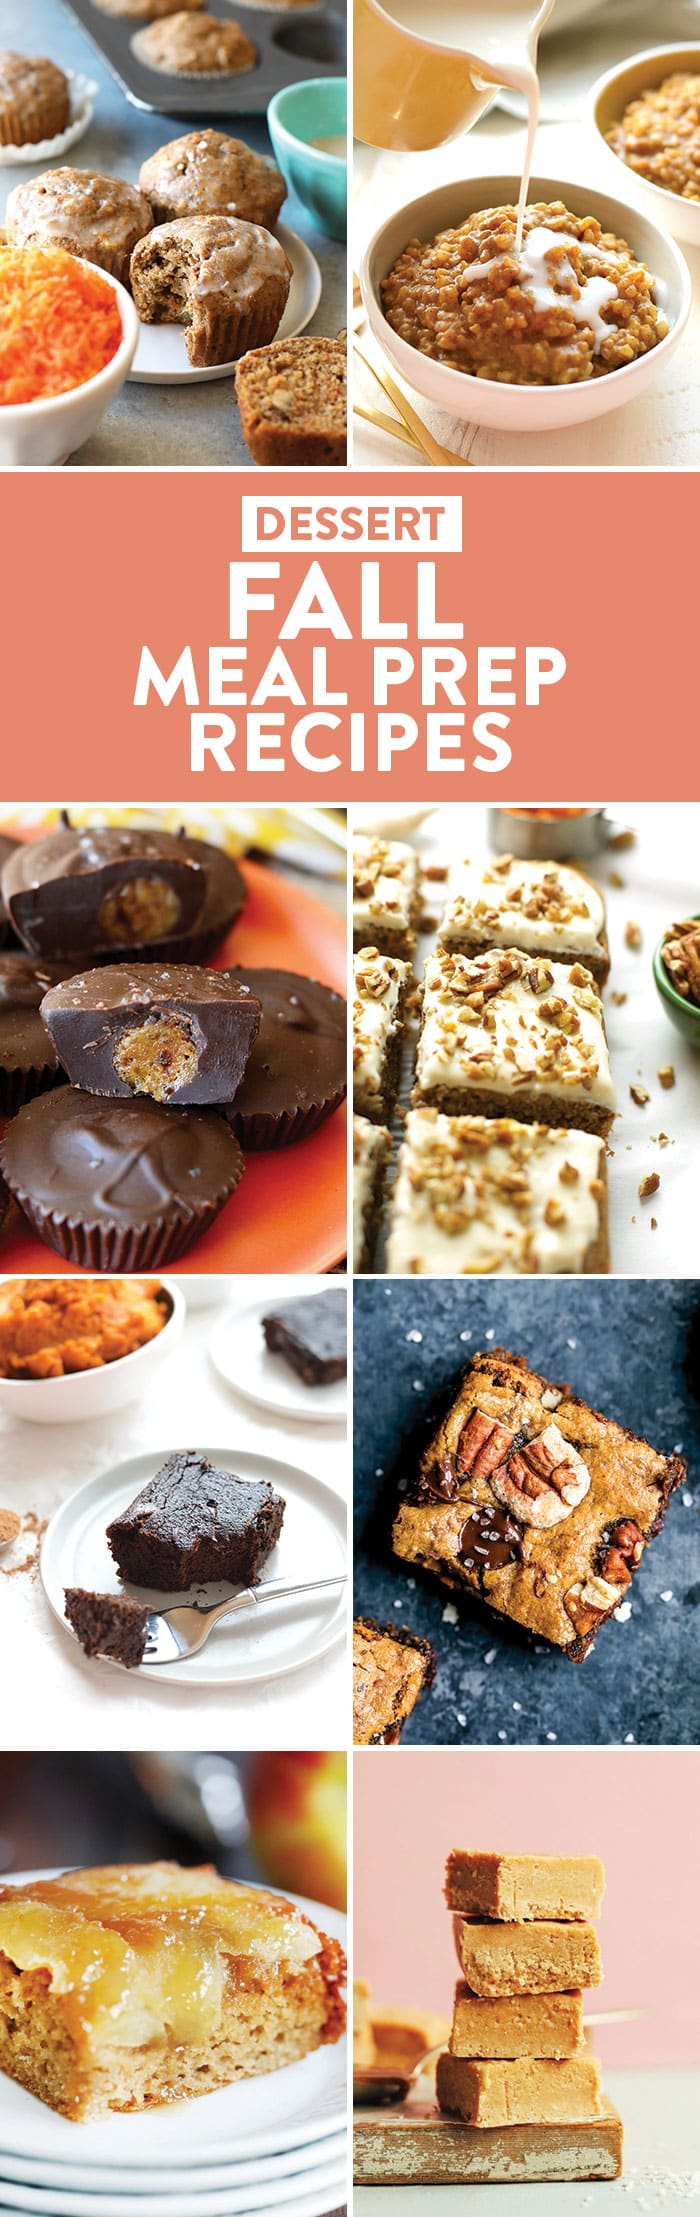 Bring on the crunchy leaves, cozy sweaters, PSLs, and everything fall. With all of the things we love about fall comes the start of school, new projects at work, and the holidays. Here are 50 of the Tastiest Meal Prep Recipes for Fall that will ensure that you are eating healthy during the busyness of the fall season!